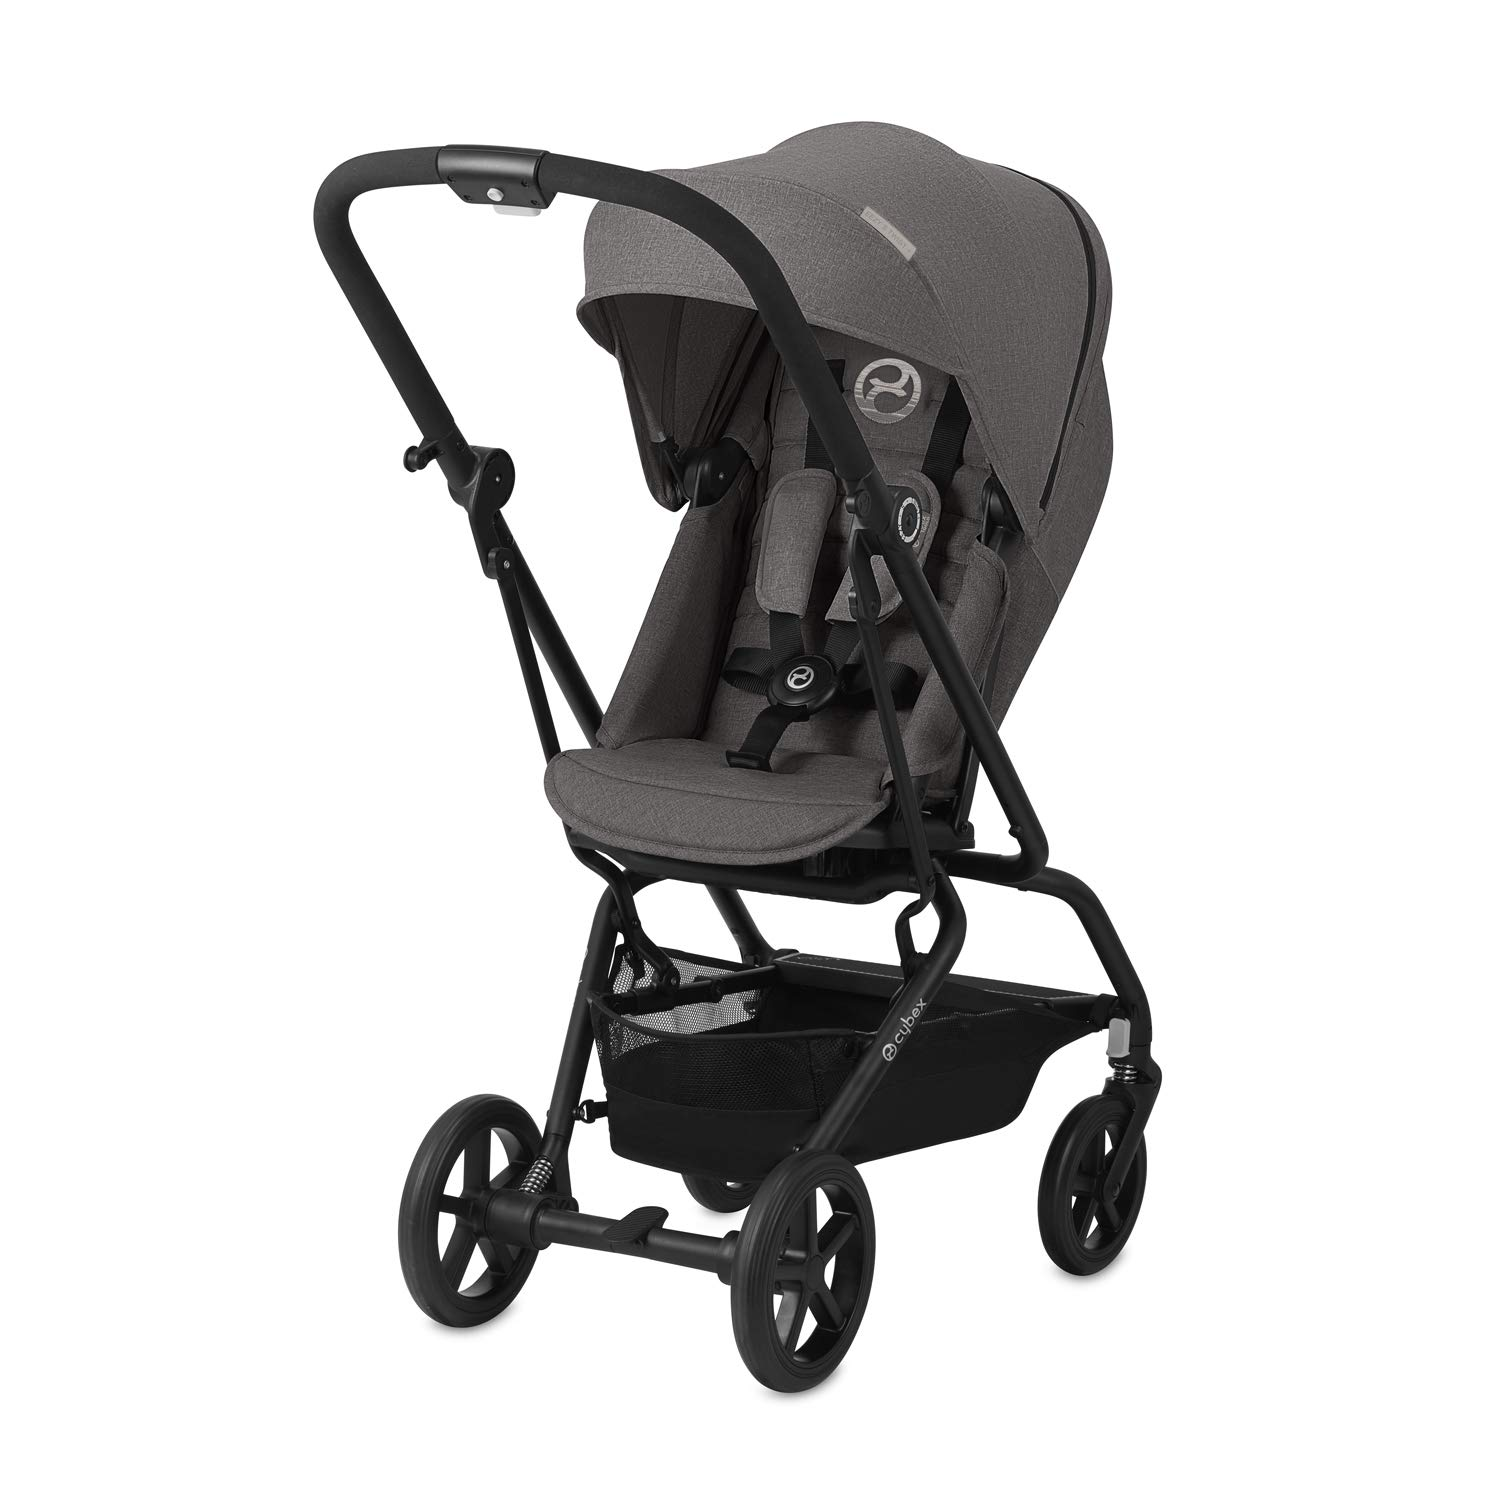 Ultra-Compact from Birth to 17 kg CYBEX Gold Eezy S Twist+ Compact Pushchair 360/° Rotatable Seat Unit Lavastone Black Lightweight Approx. 4 Years